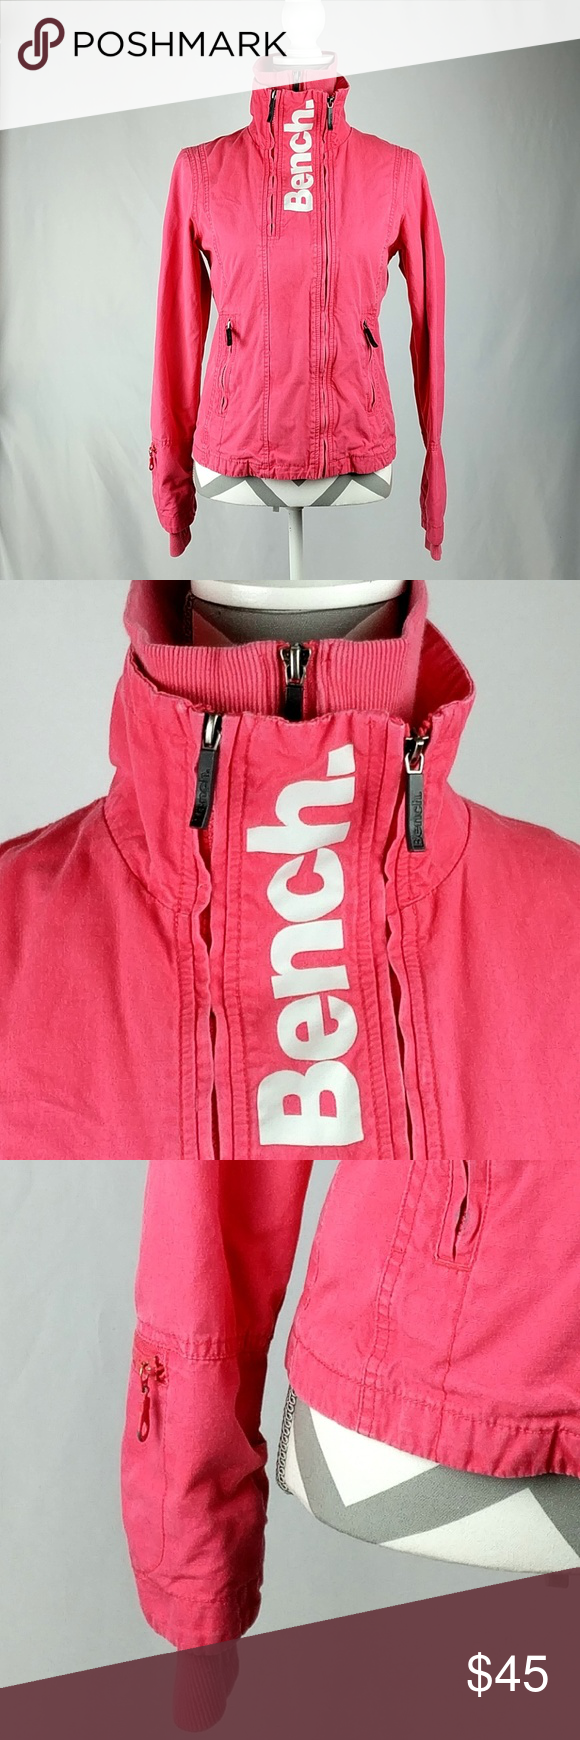 Bench Jacket Zip Front 100 Cotton Bench Jacket Women S Size Small See Picture For Measurements Multiple Zip Front Thu Clothes Design Bench Jackets Fashion [ 1740 x 580 Pixel ]